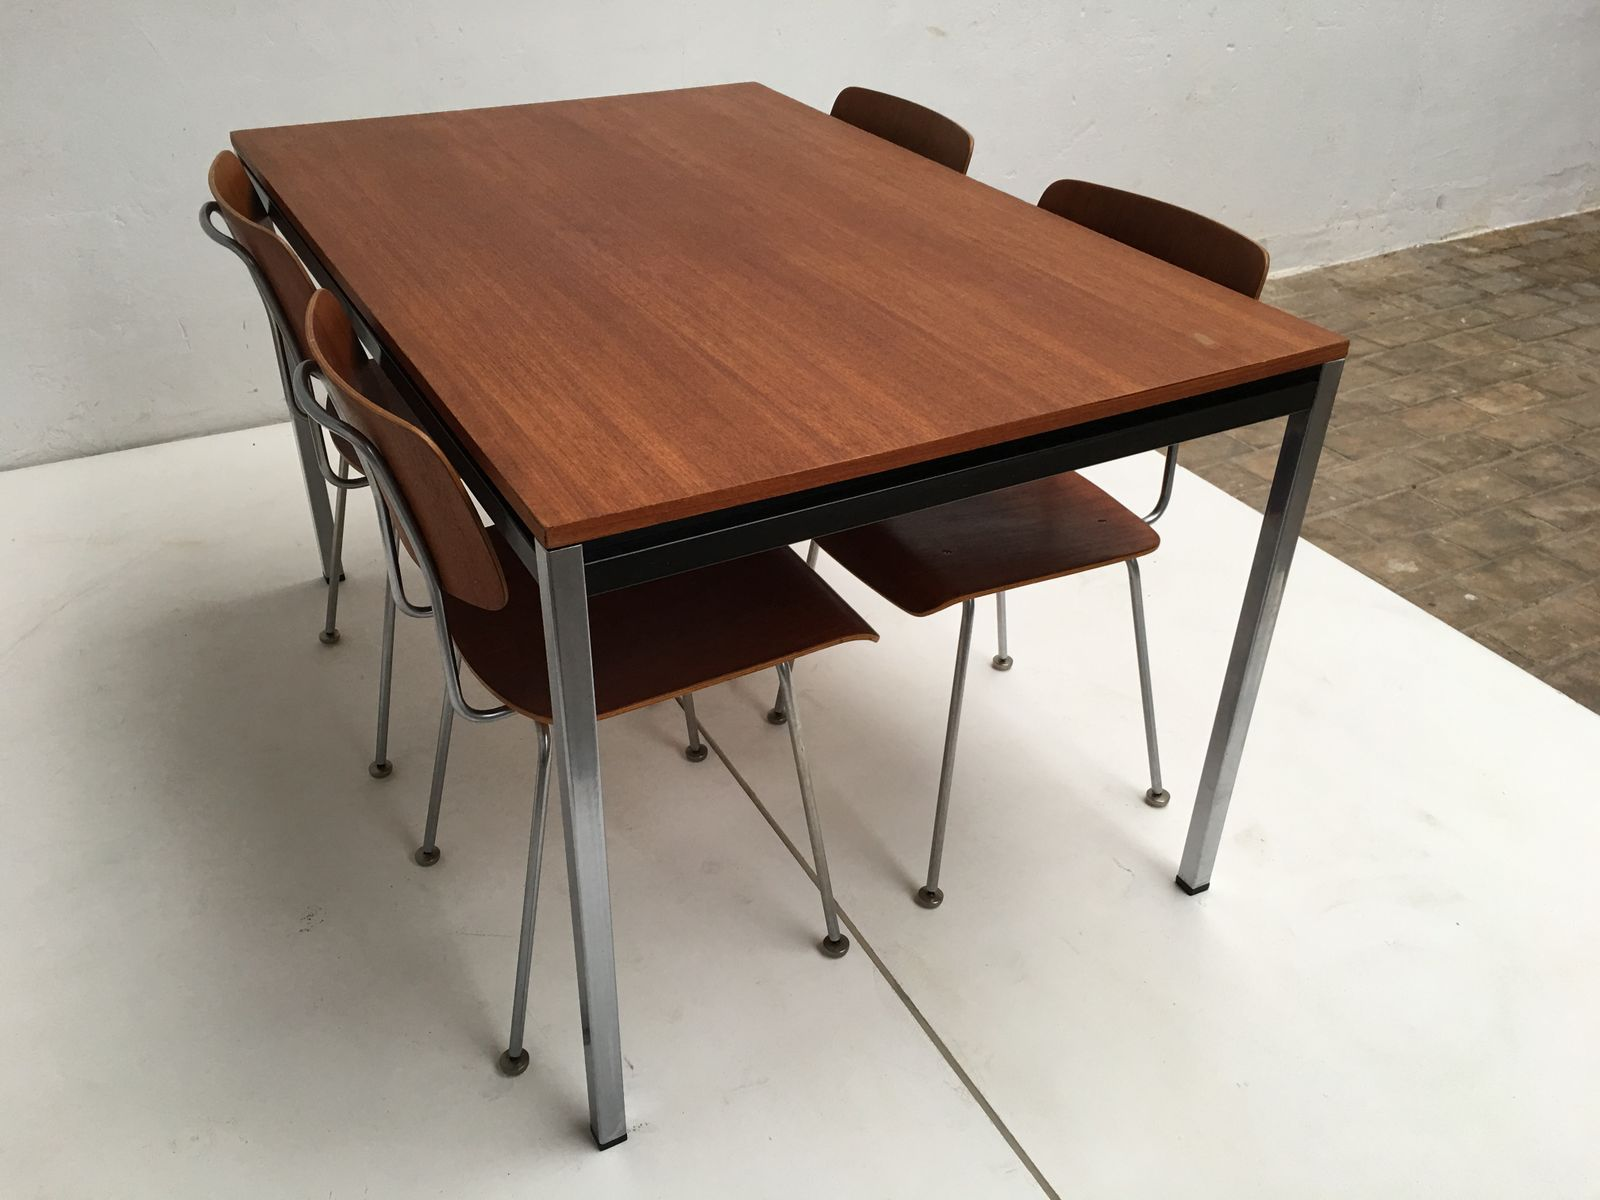 Model 1263 Chairs and Dining Table by A R Cordemeyer for Gispen